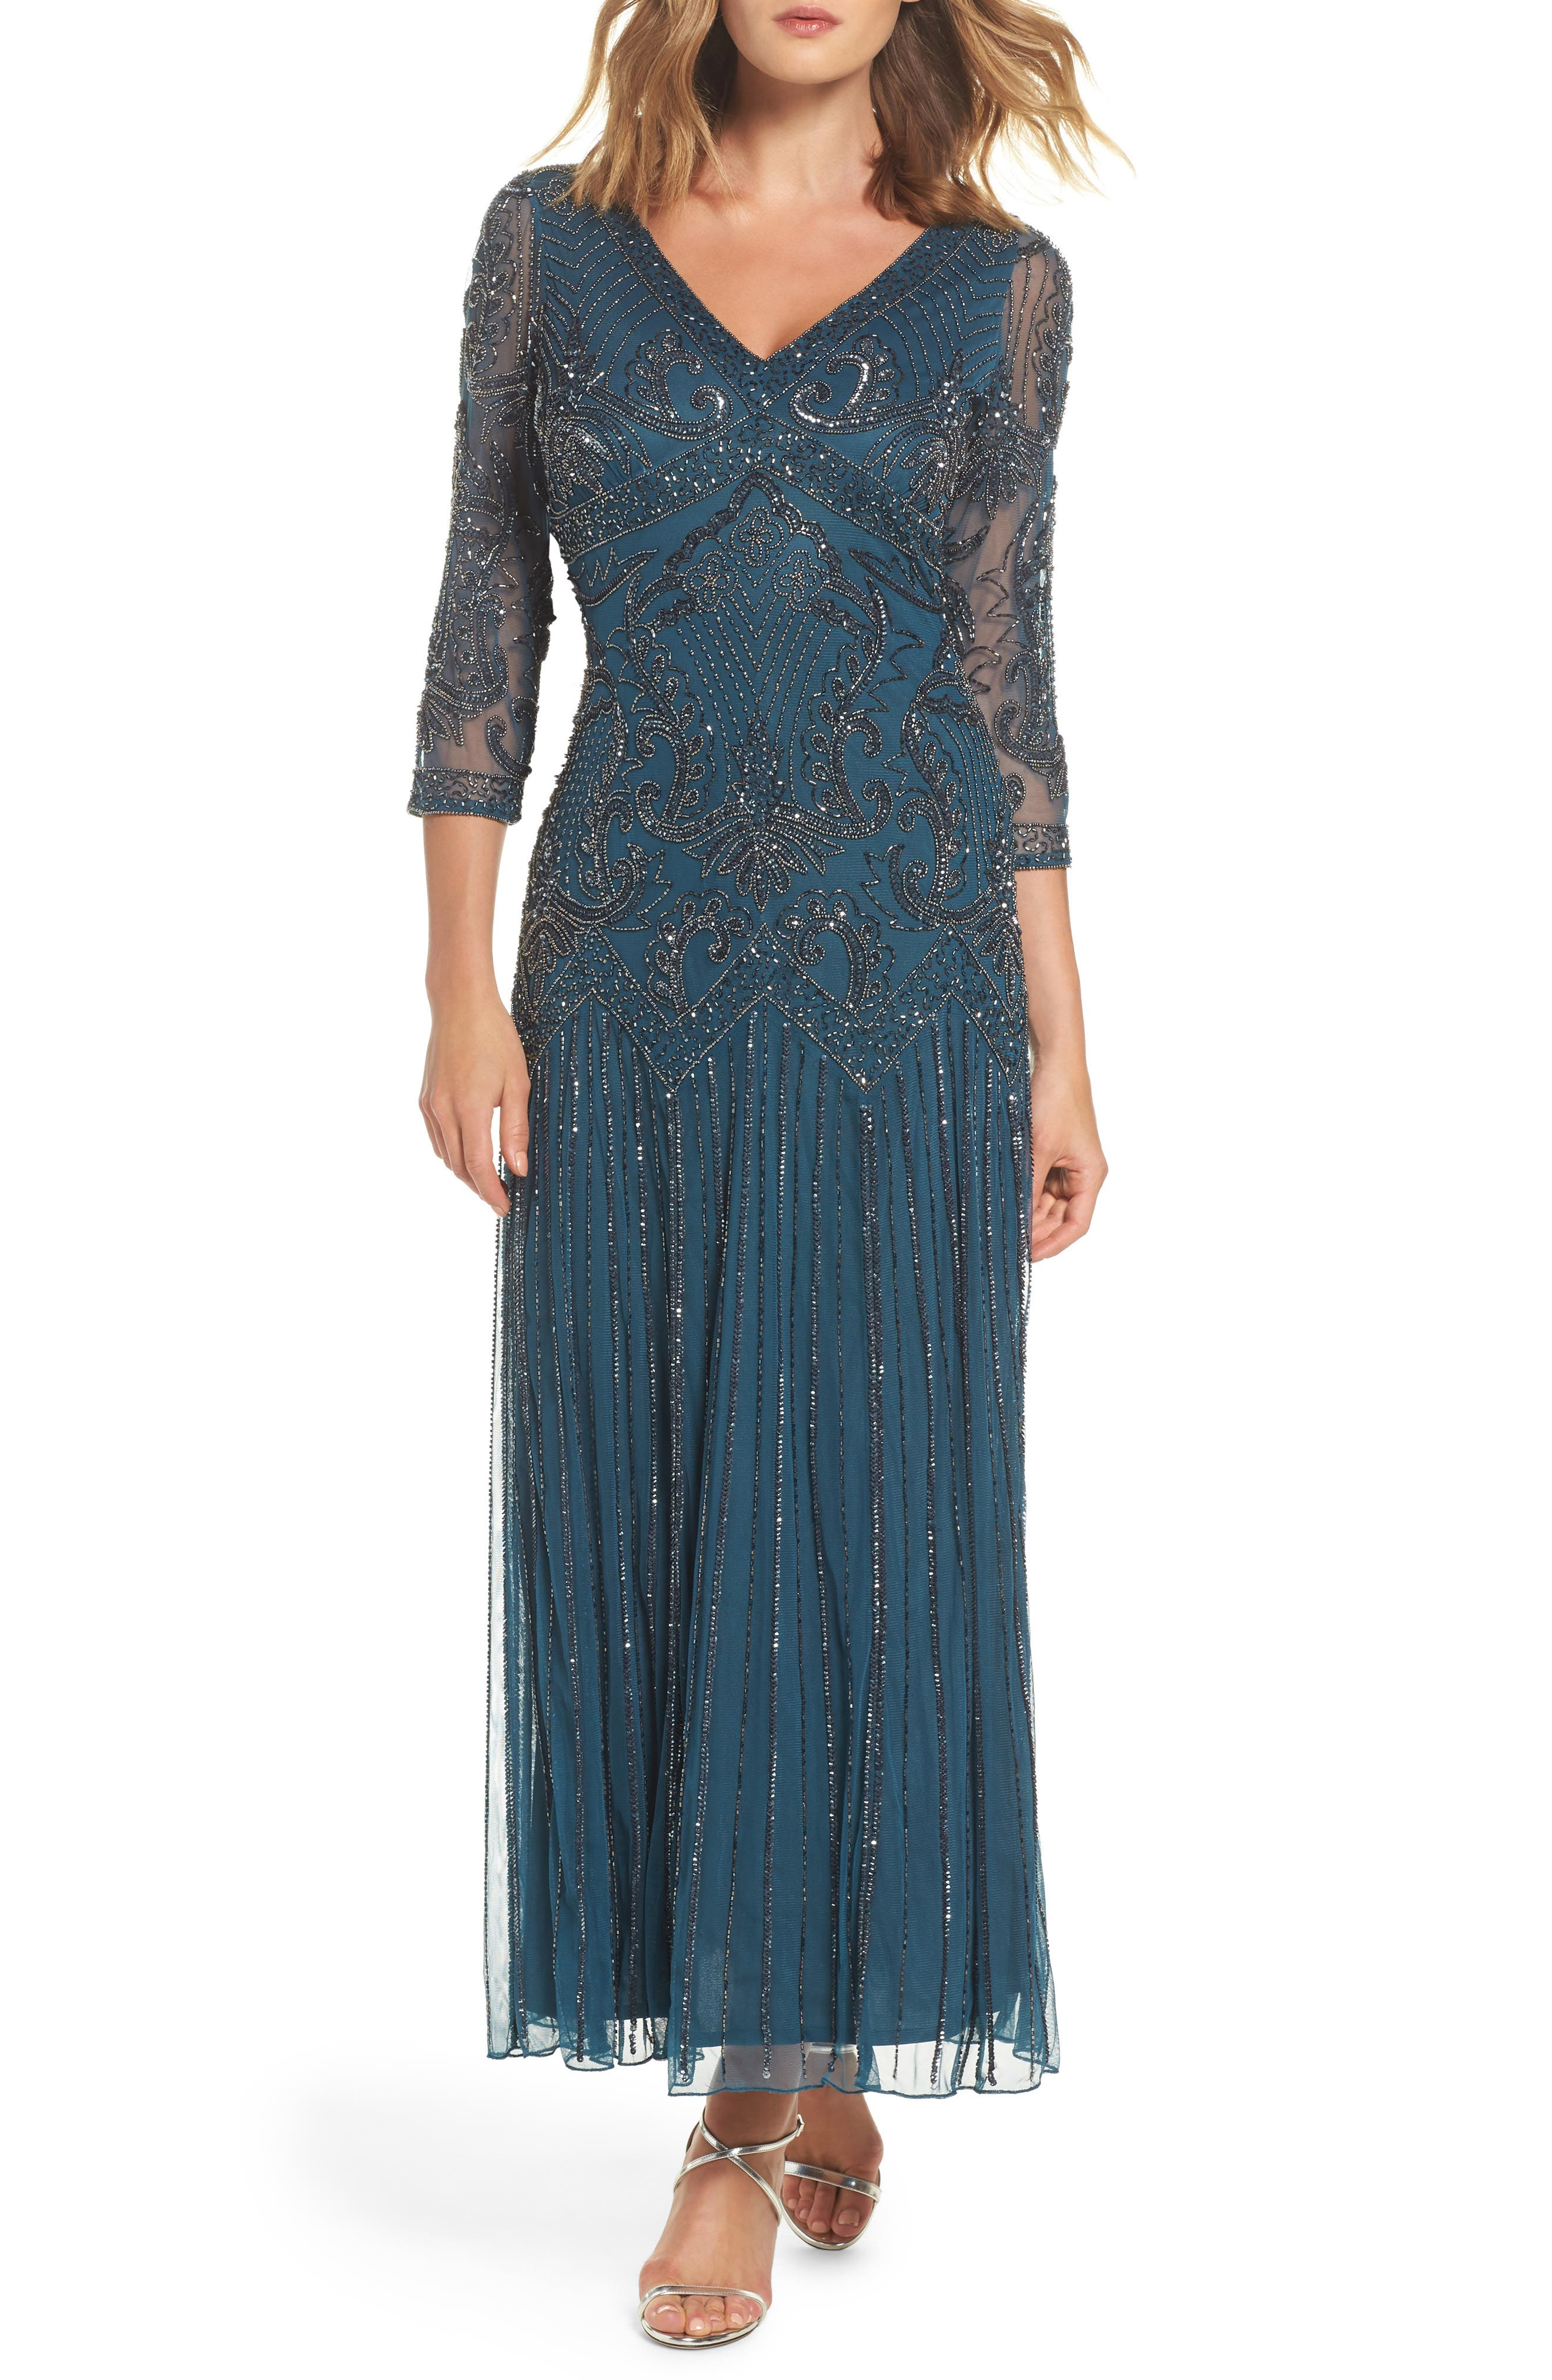 Main Image - Pisarro Nights Embellished Mesh Drop Waist Dress (Regular & Petite)